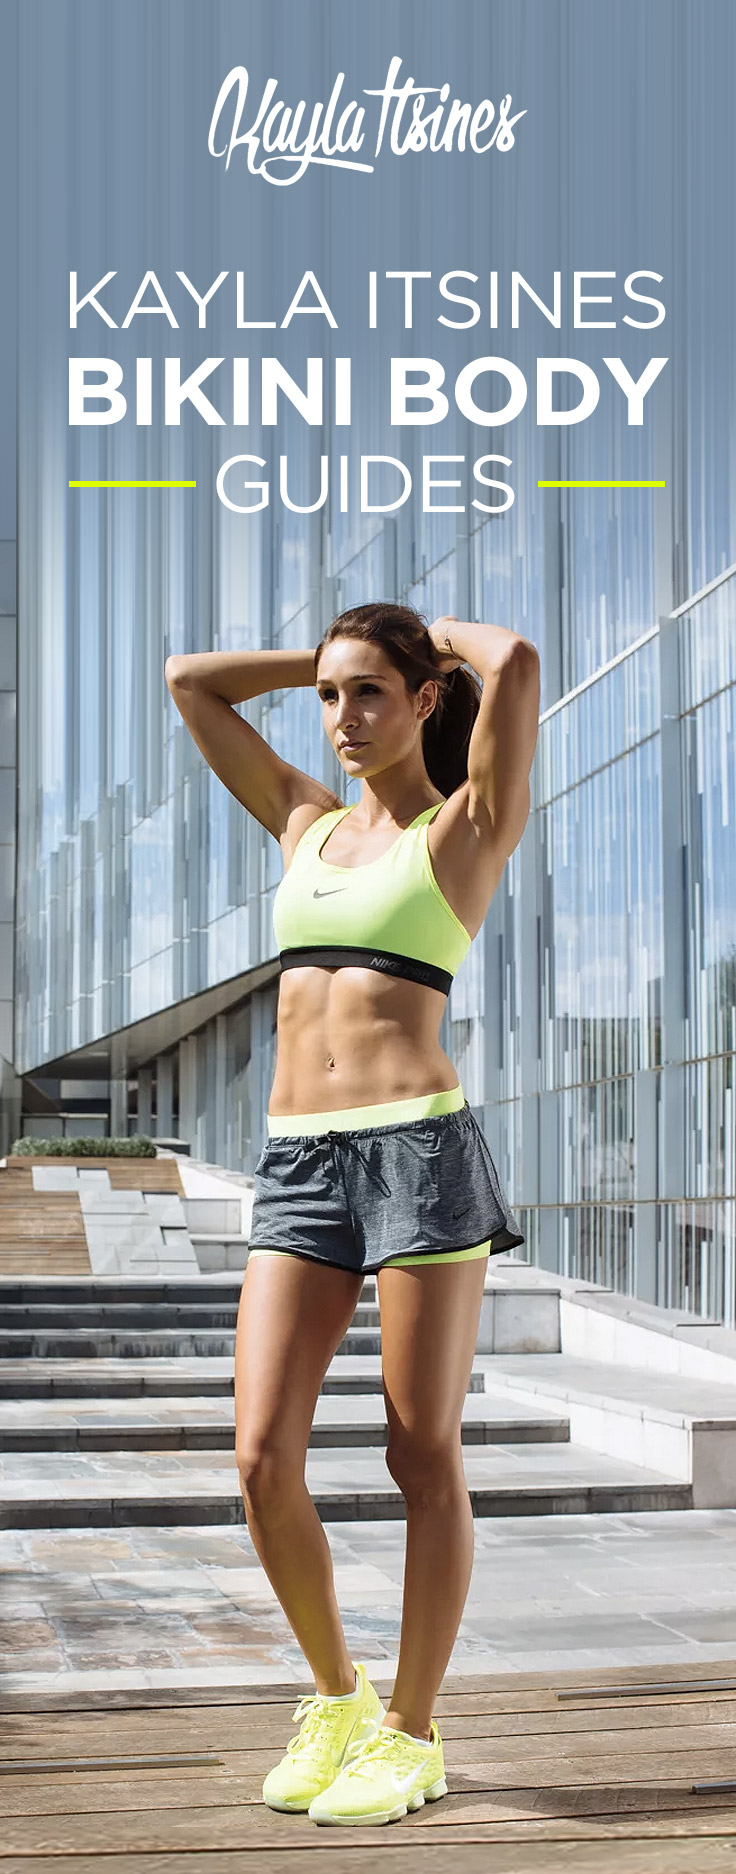 Earn your Bikini Body with Kayla Itsines' BBG workout and nutrition guides. Use coupon code to get 10% OFF: https://workoutlabs.com/s/9JPkx